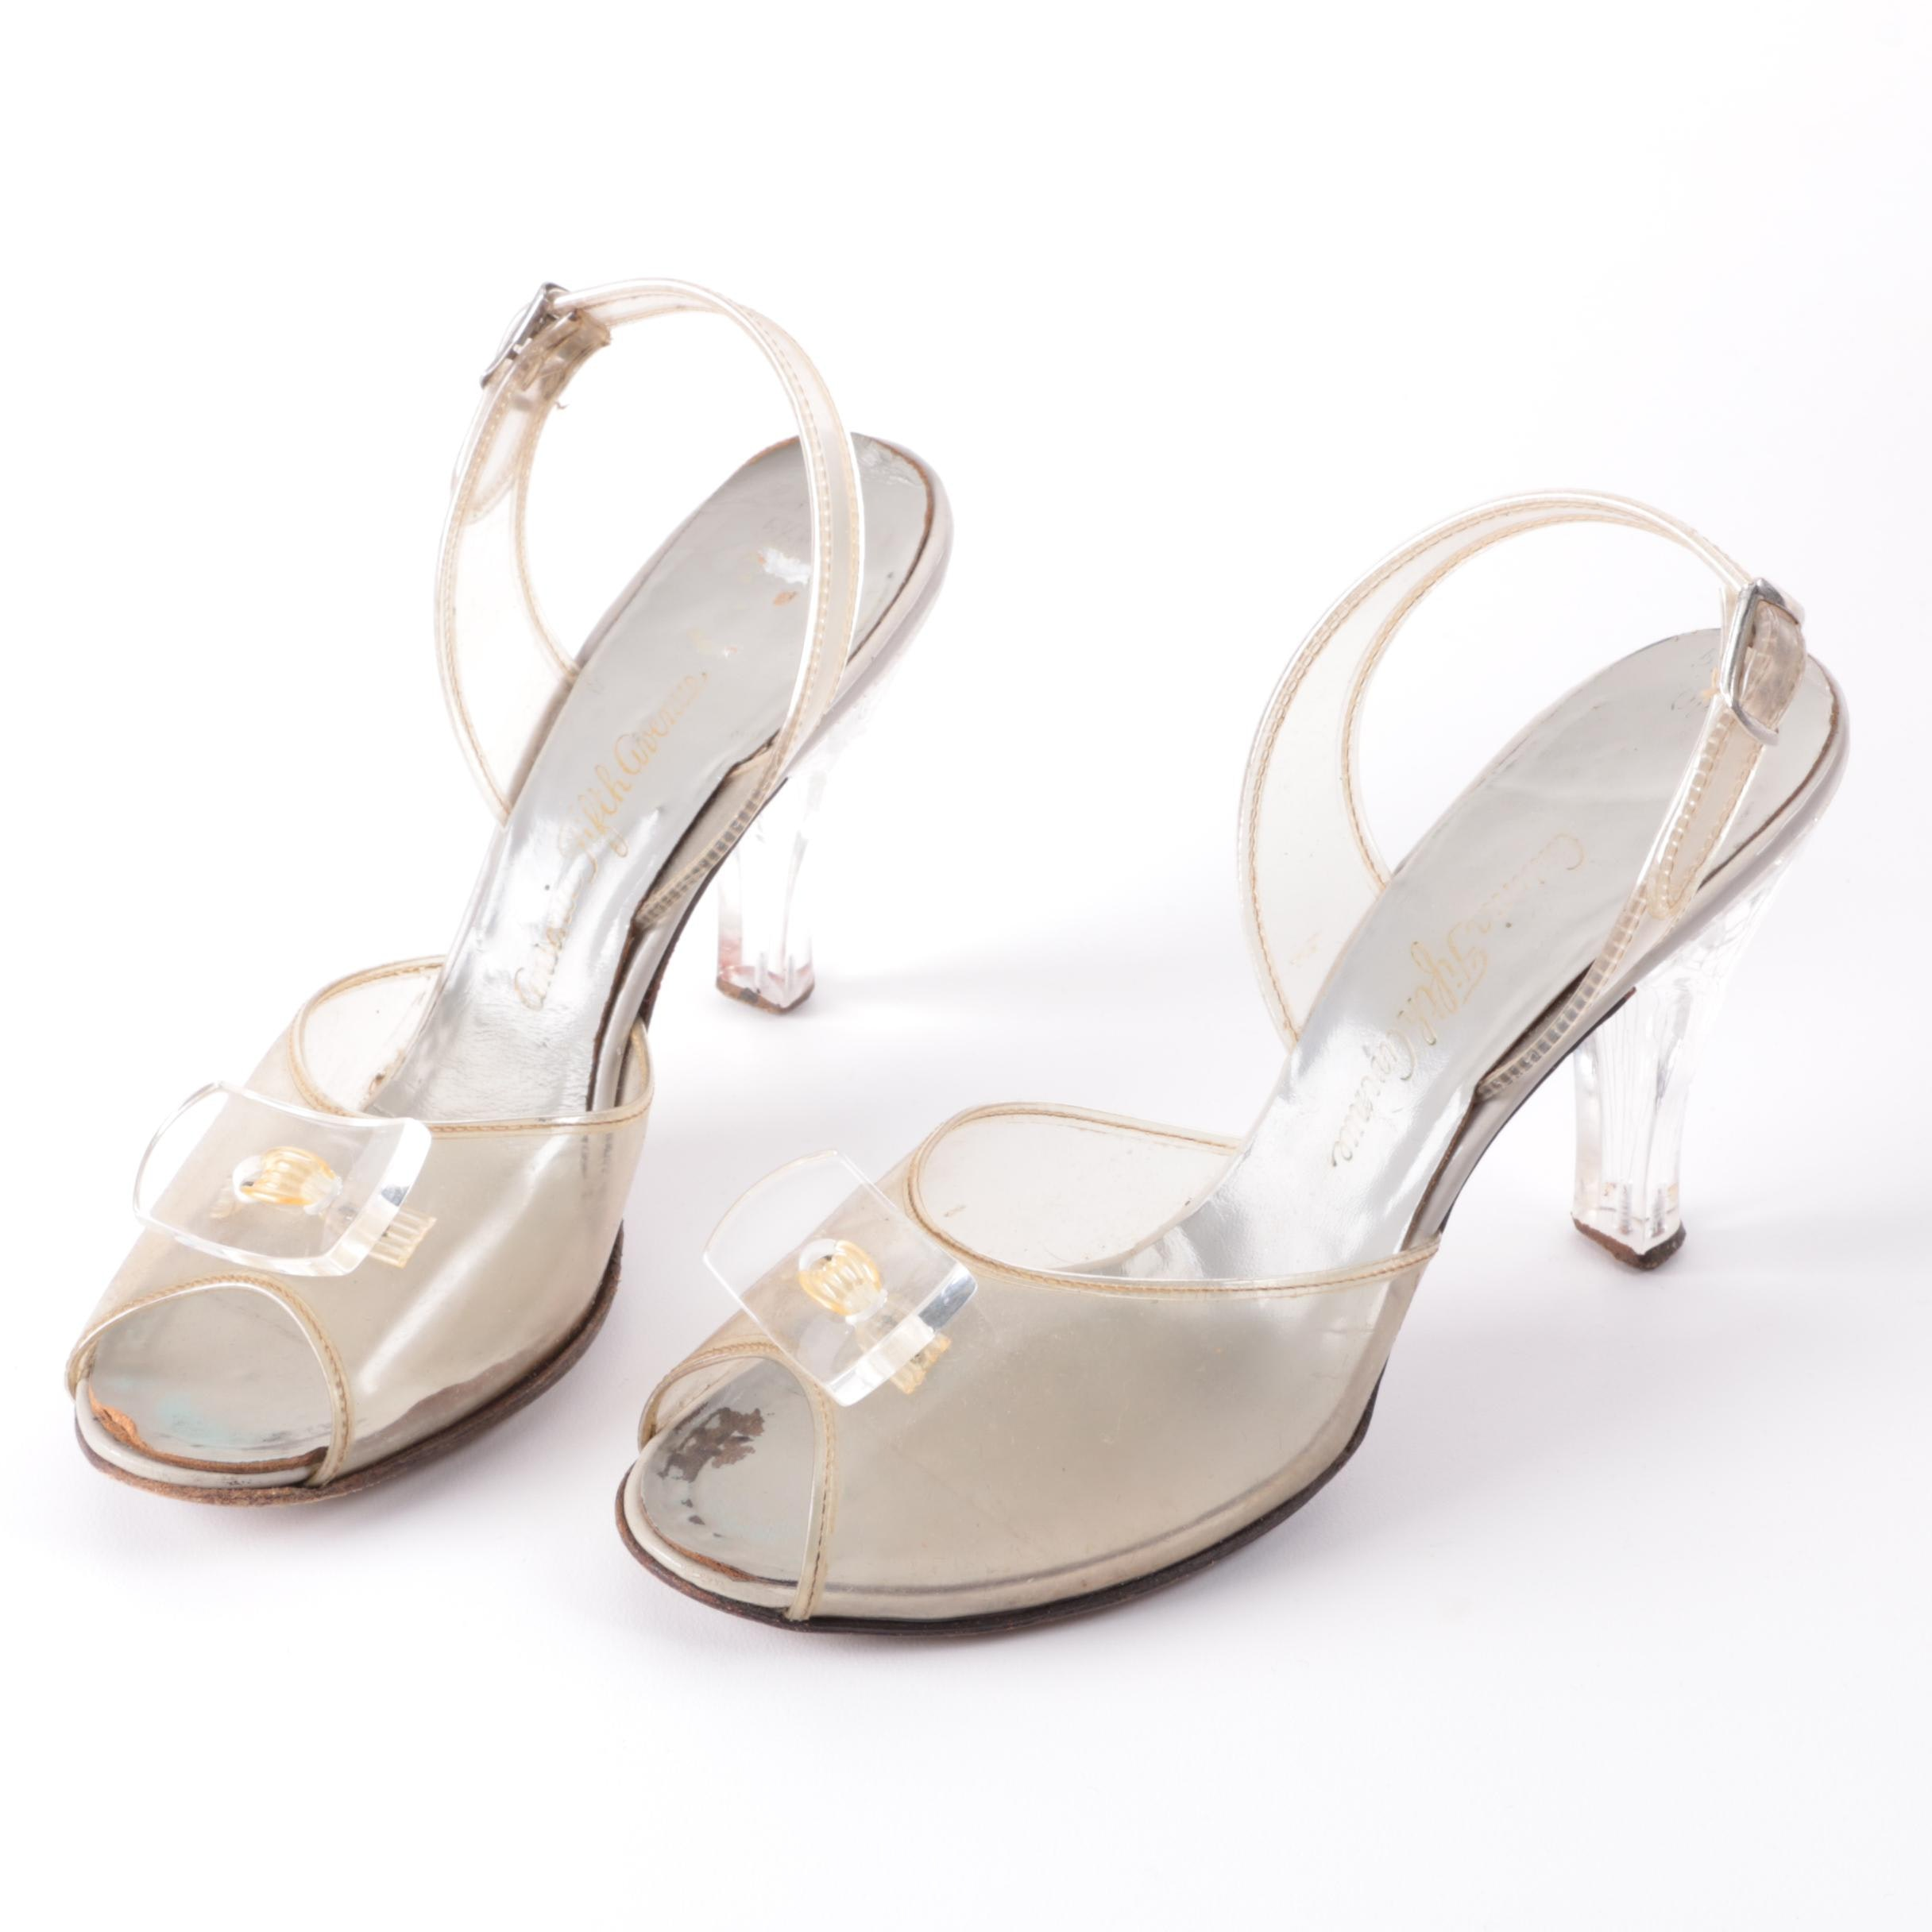 Circa 1950s Vintage Ansonia Fifth Avenue Clear Vinyl High Heels